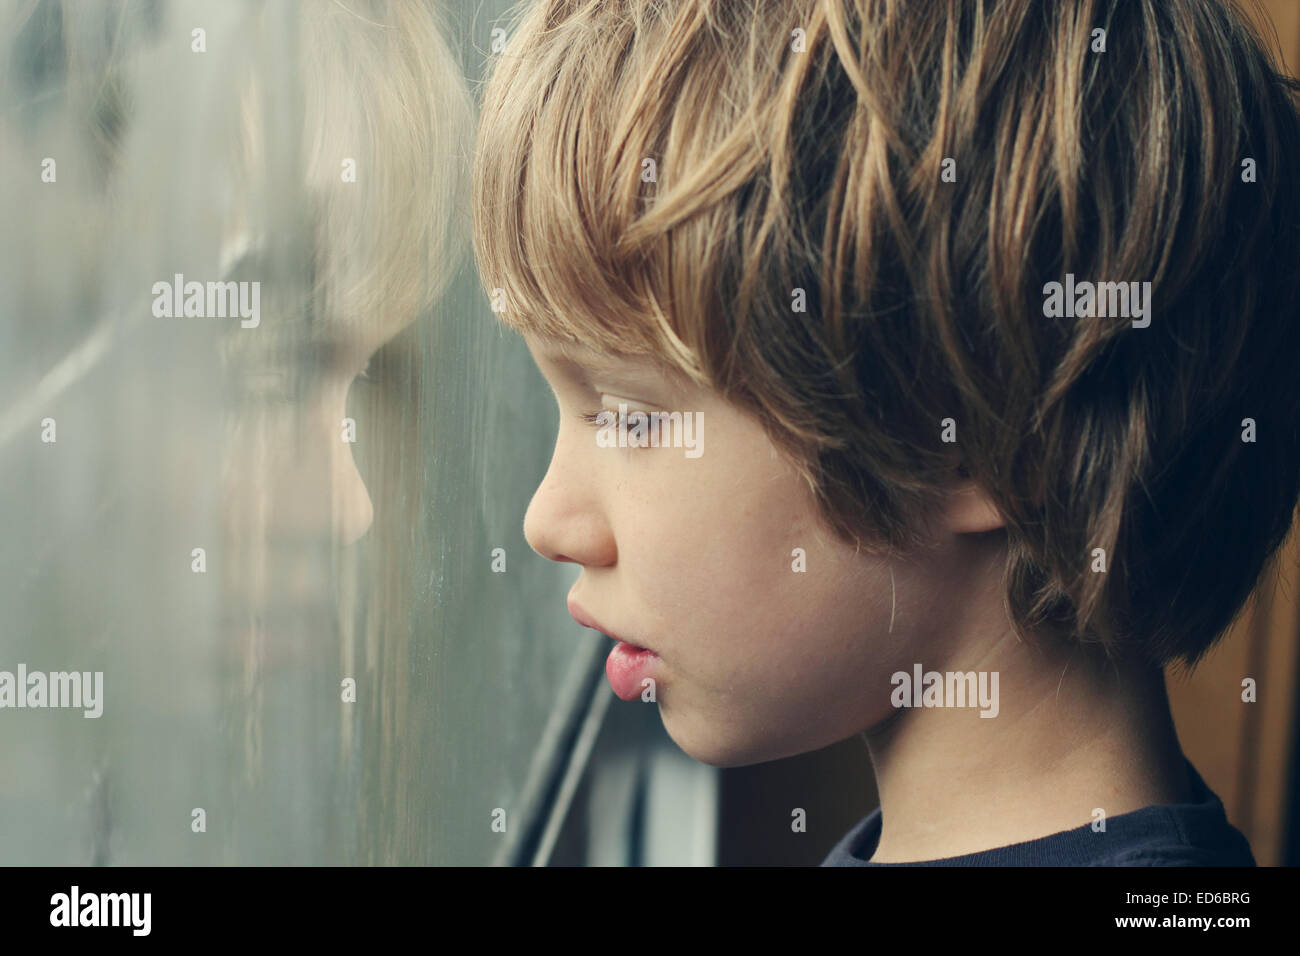 Cute 6 years old boy looking through the window - Stock Image